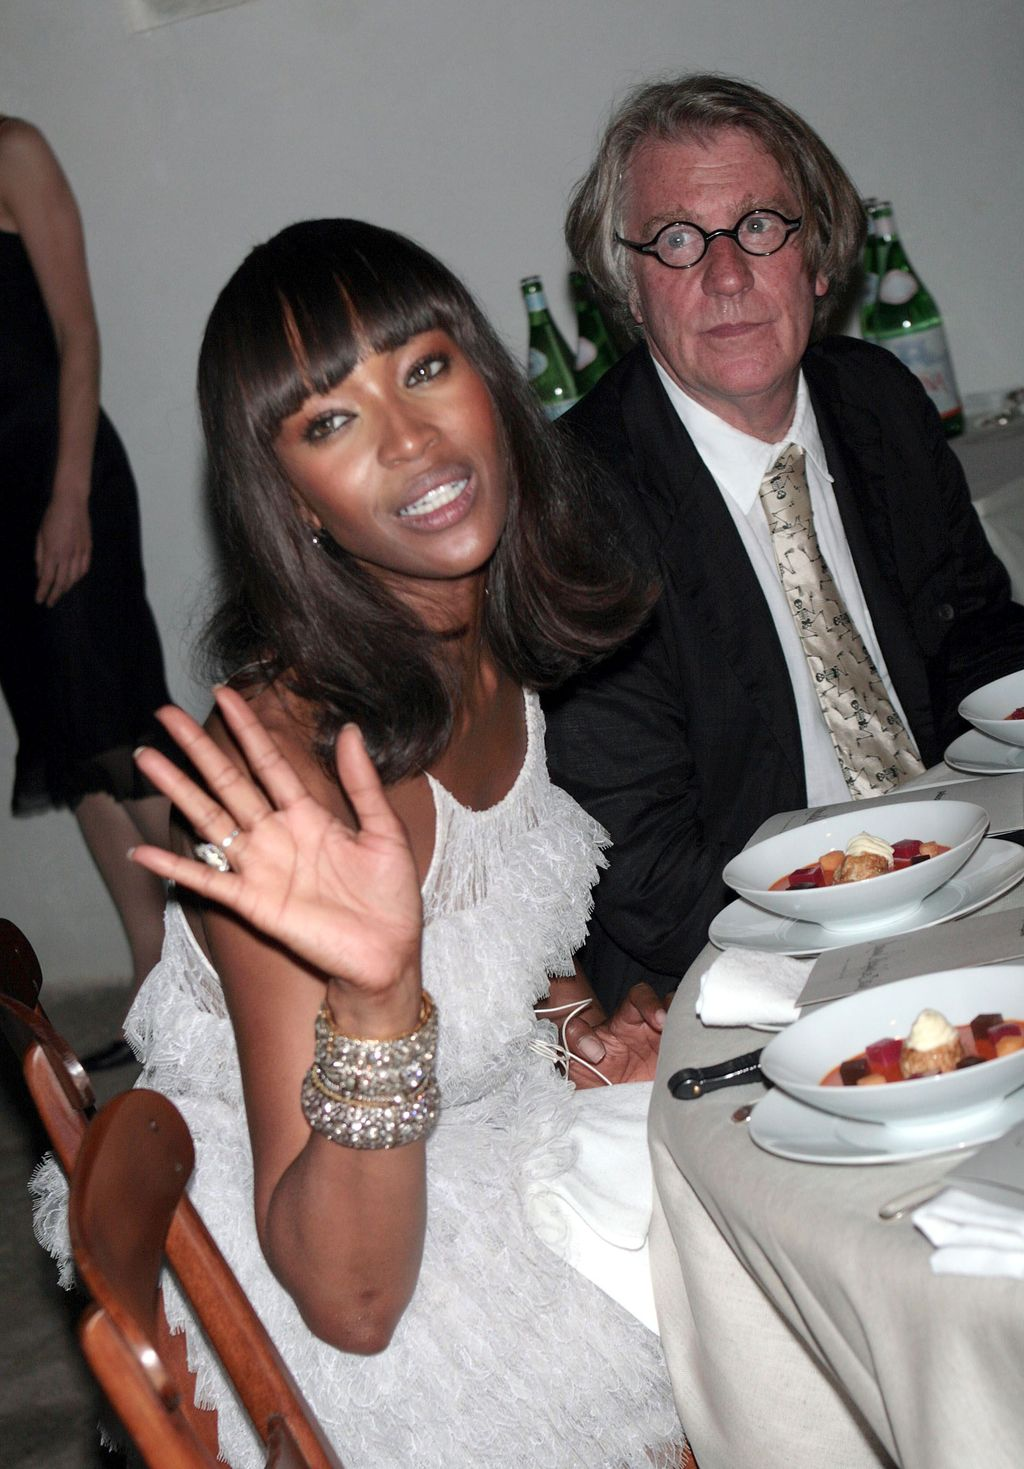 VENICE, ITALY - JUNE 8:  Model Naomi Campbell (L) attends Pinault's private dinner at the Fondazione Cini during the 52nd annual Biennale June 8, 2007 in Venice, Italy.  (Photo by Elisabetta Villa/Getty Images)